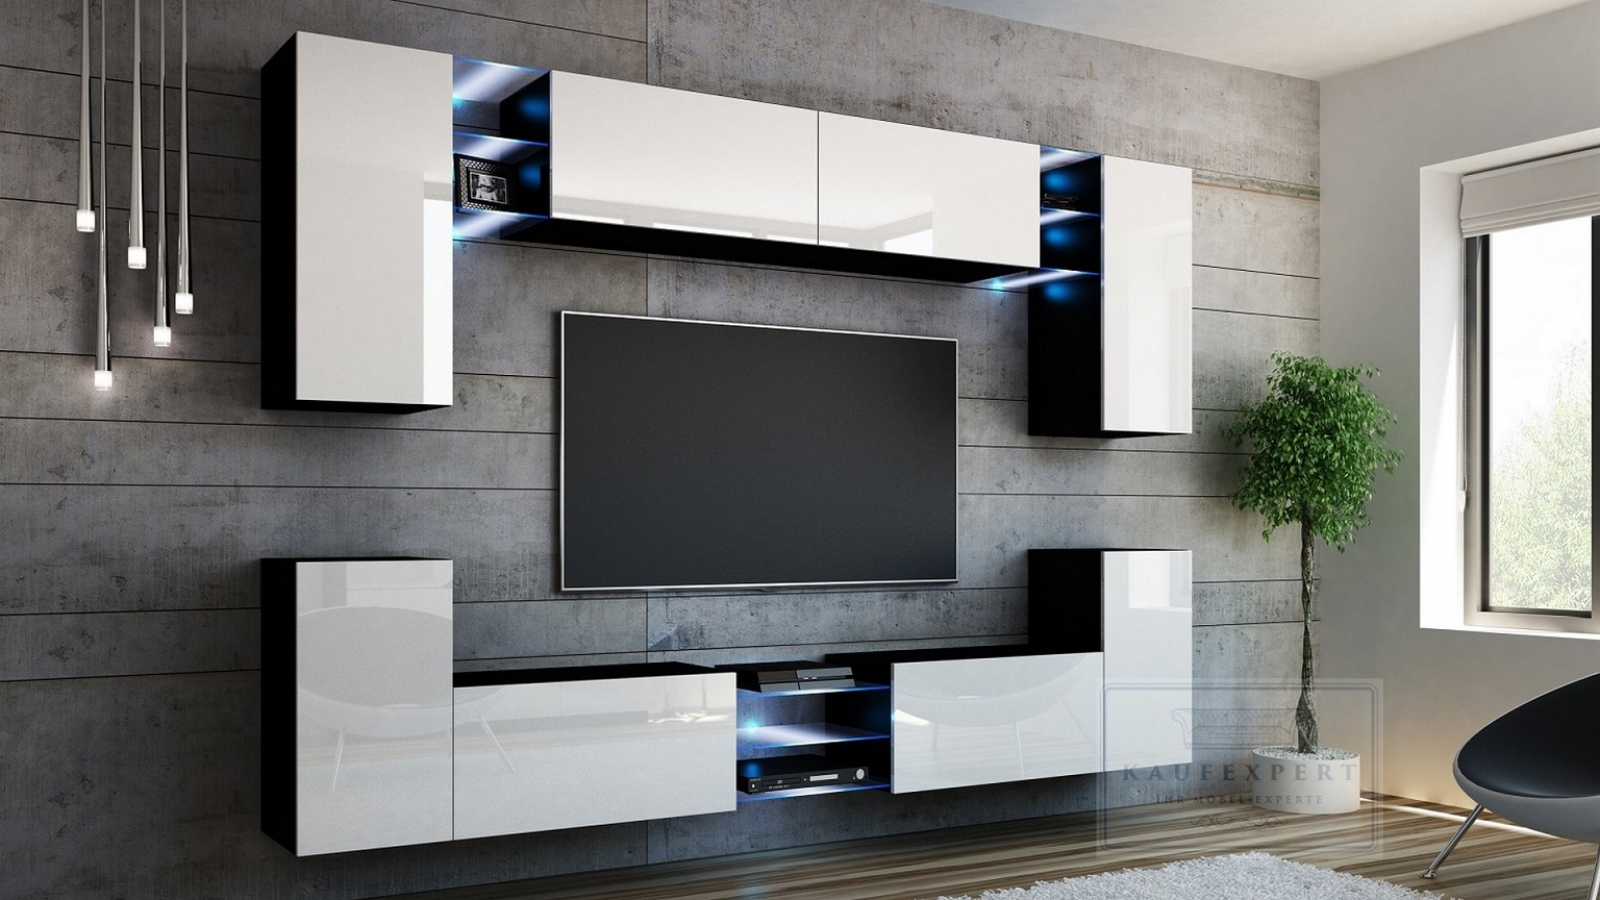 tv wohnwand wei artikel mediawand wohnwand edge wei hochglanz tv wand mit ambiente beleuchtung. Black Bedroom Furniture Sets. Home Design Ideas